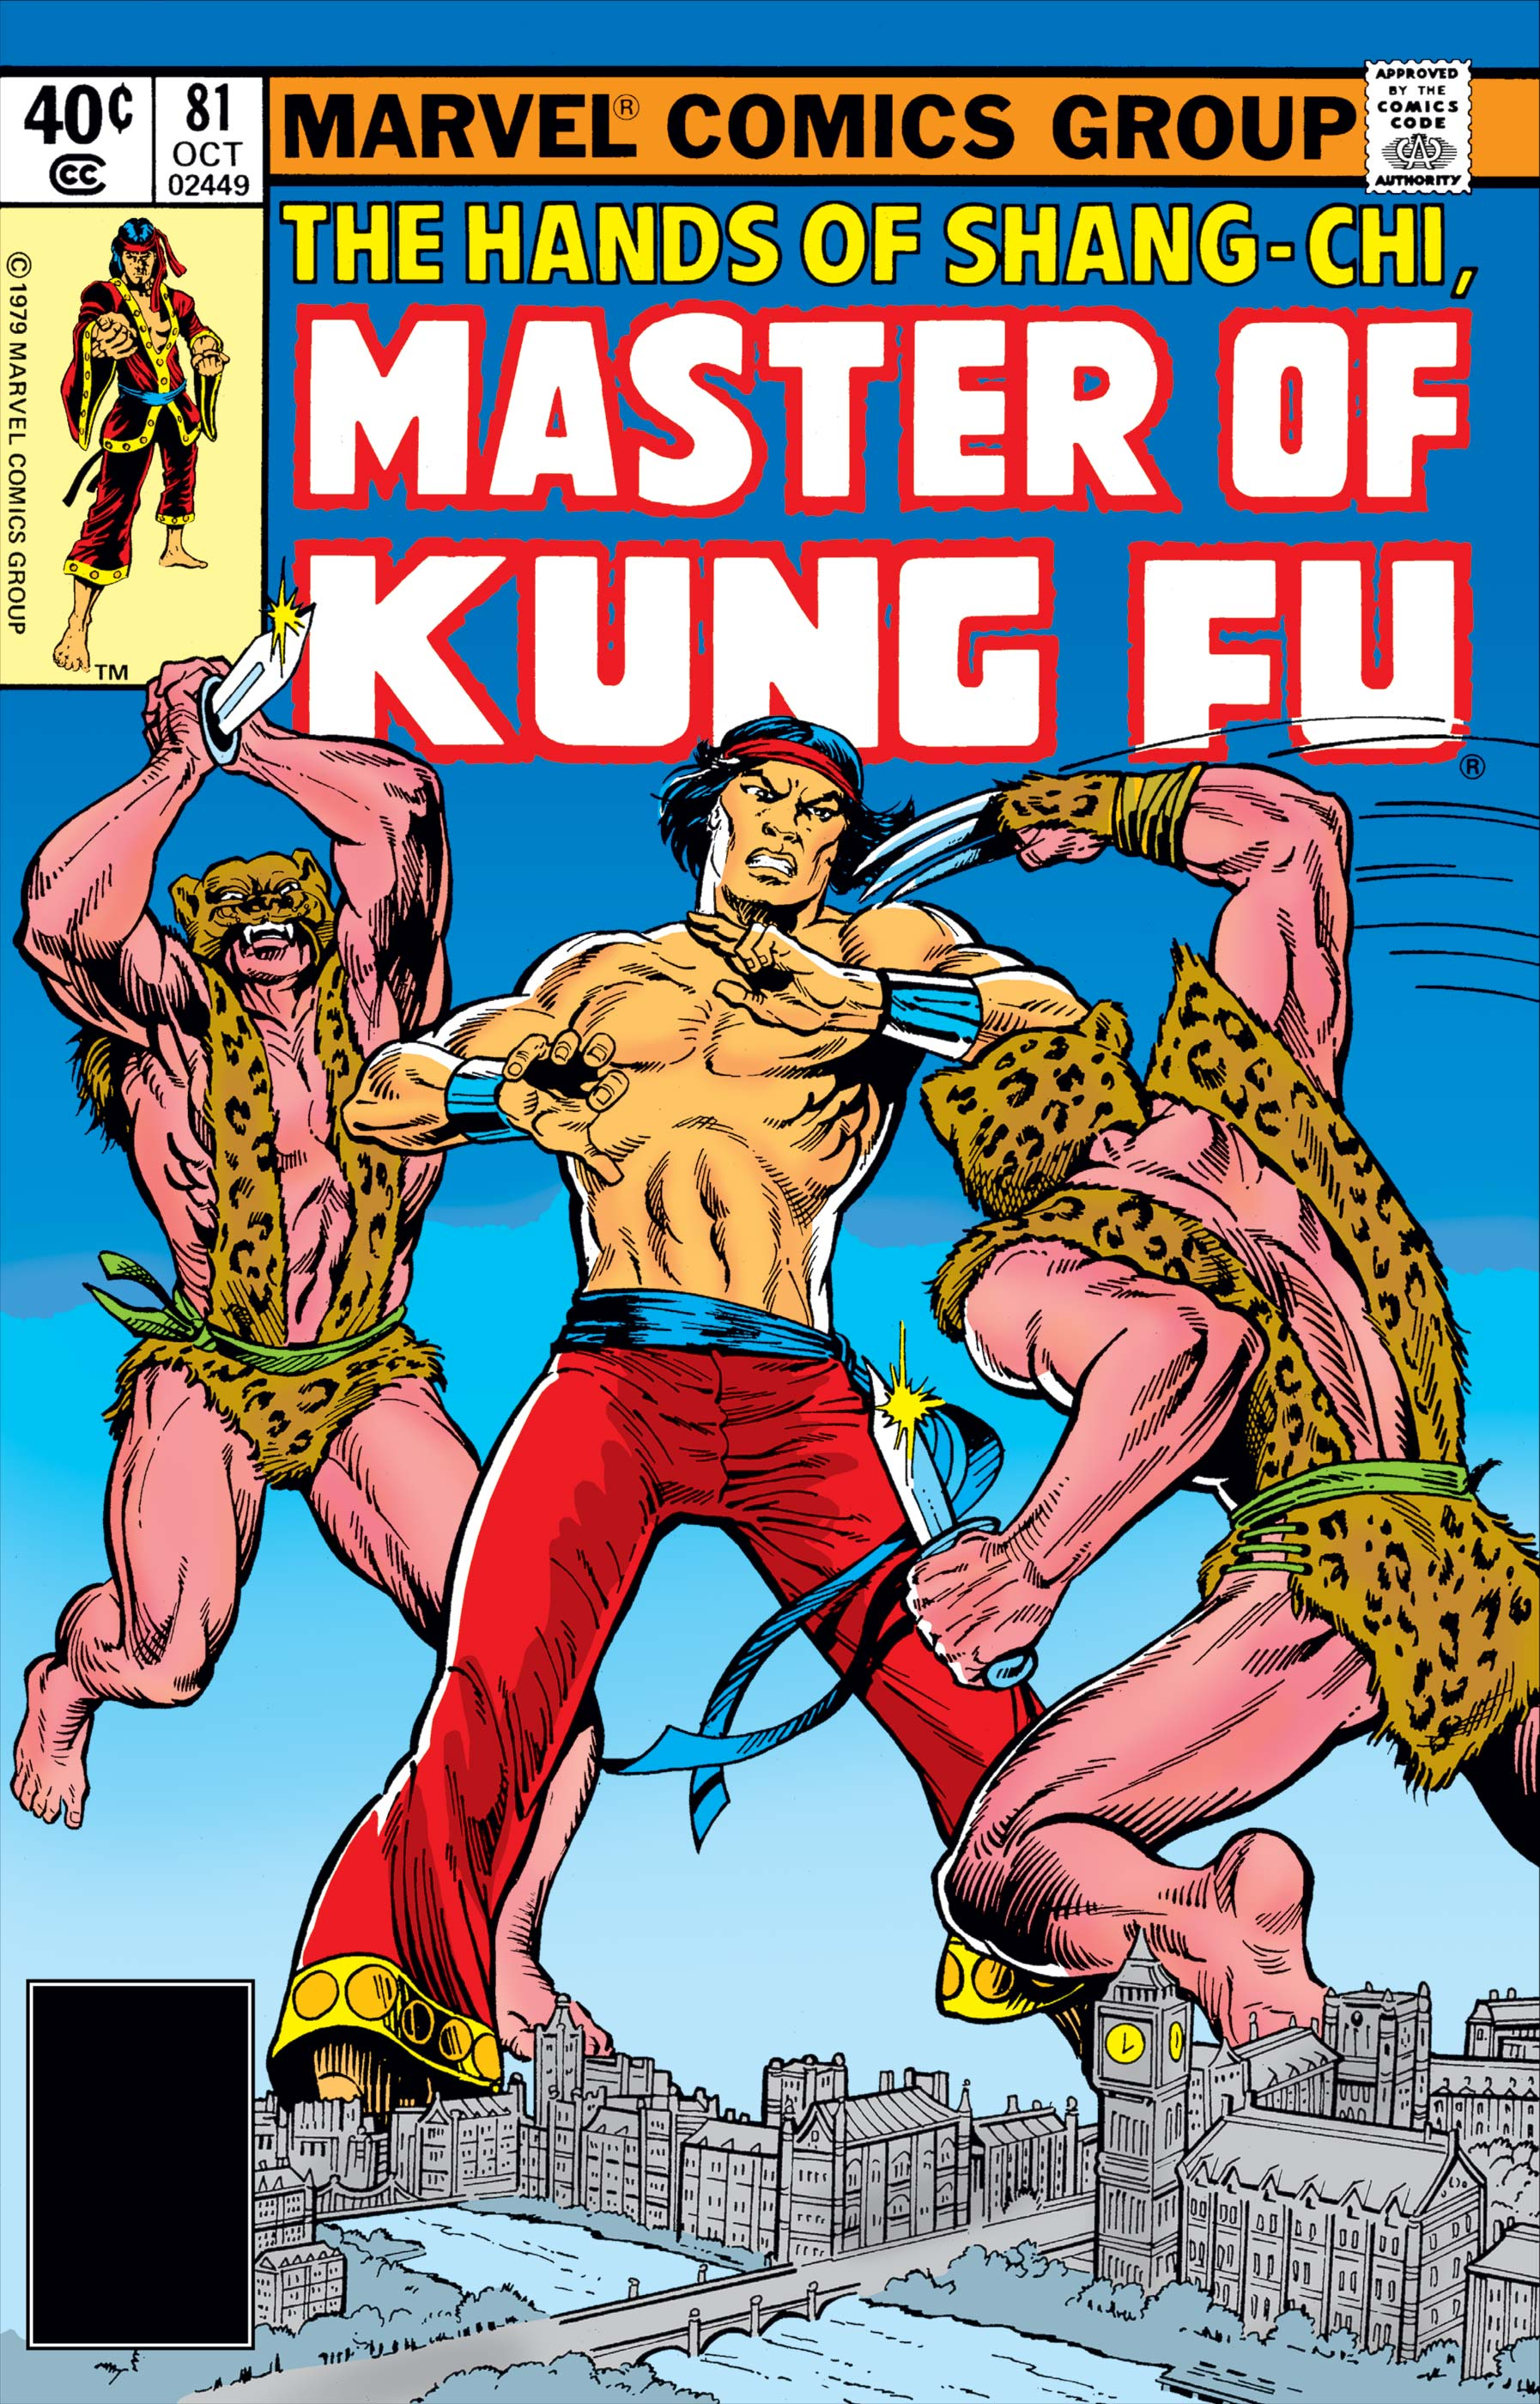 A 1979 issue of Shang-Chi's primary Marvel Comics series.